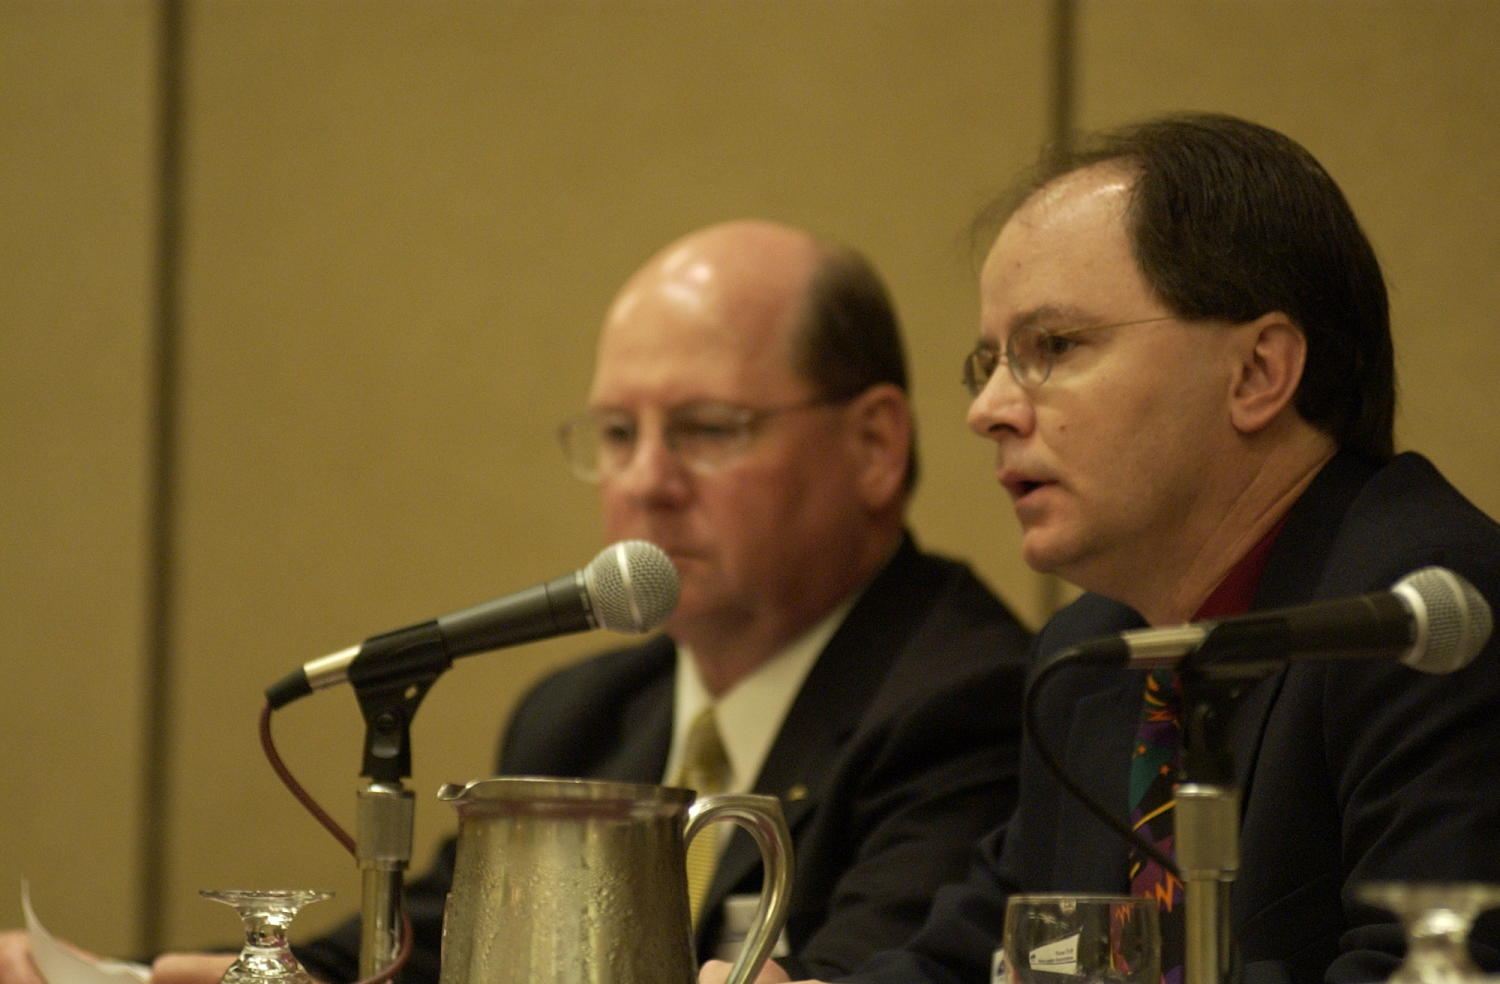 [Steve Jordan and Jack Light], Photograph of Steve Jordan (left) and Jack Light (right) in attendance at the 2004 Texas Daily News Association annual conference held in Corpus Christi. Jordan and Light are seen sitting behind a table and sitting in front of a microphones as they are guest speakers on a panel.,